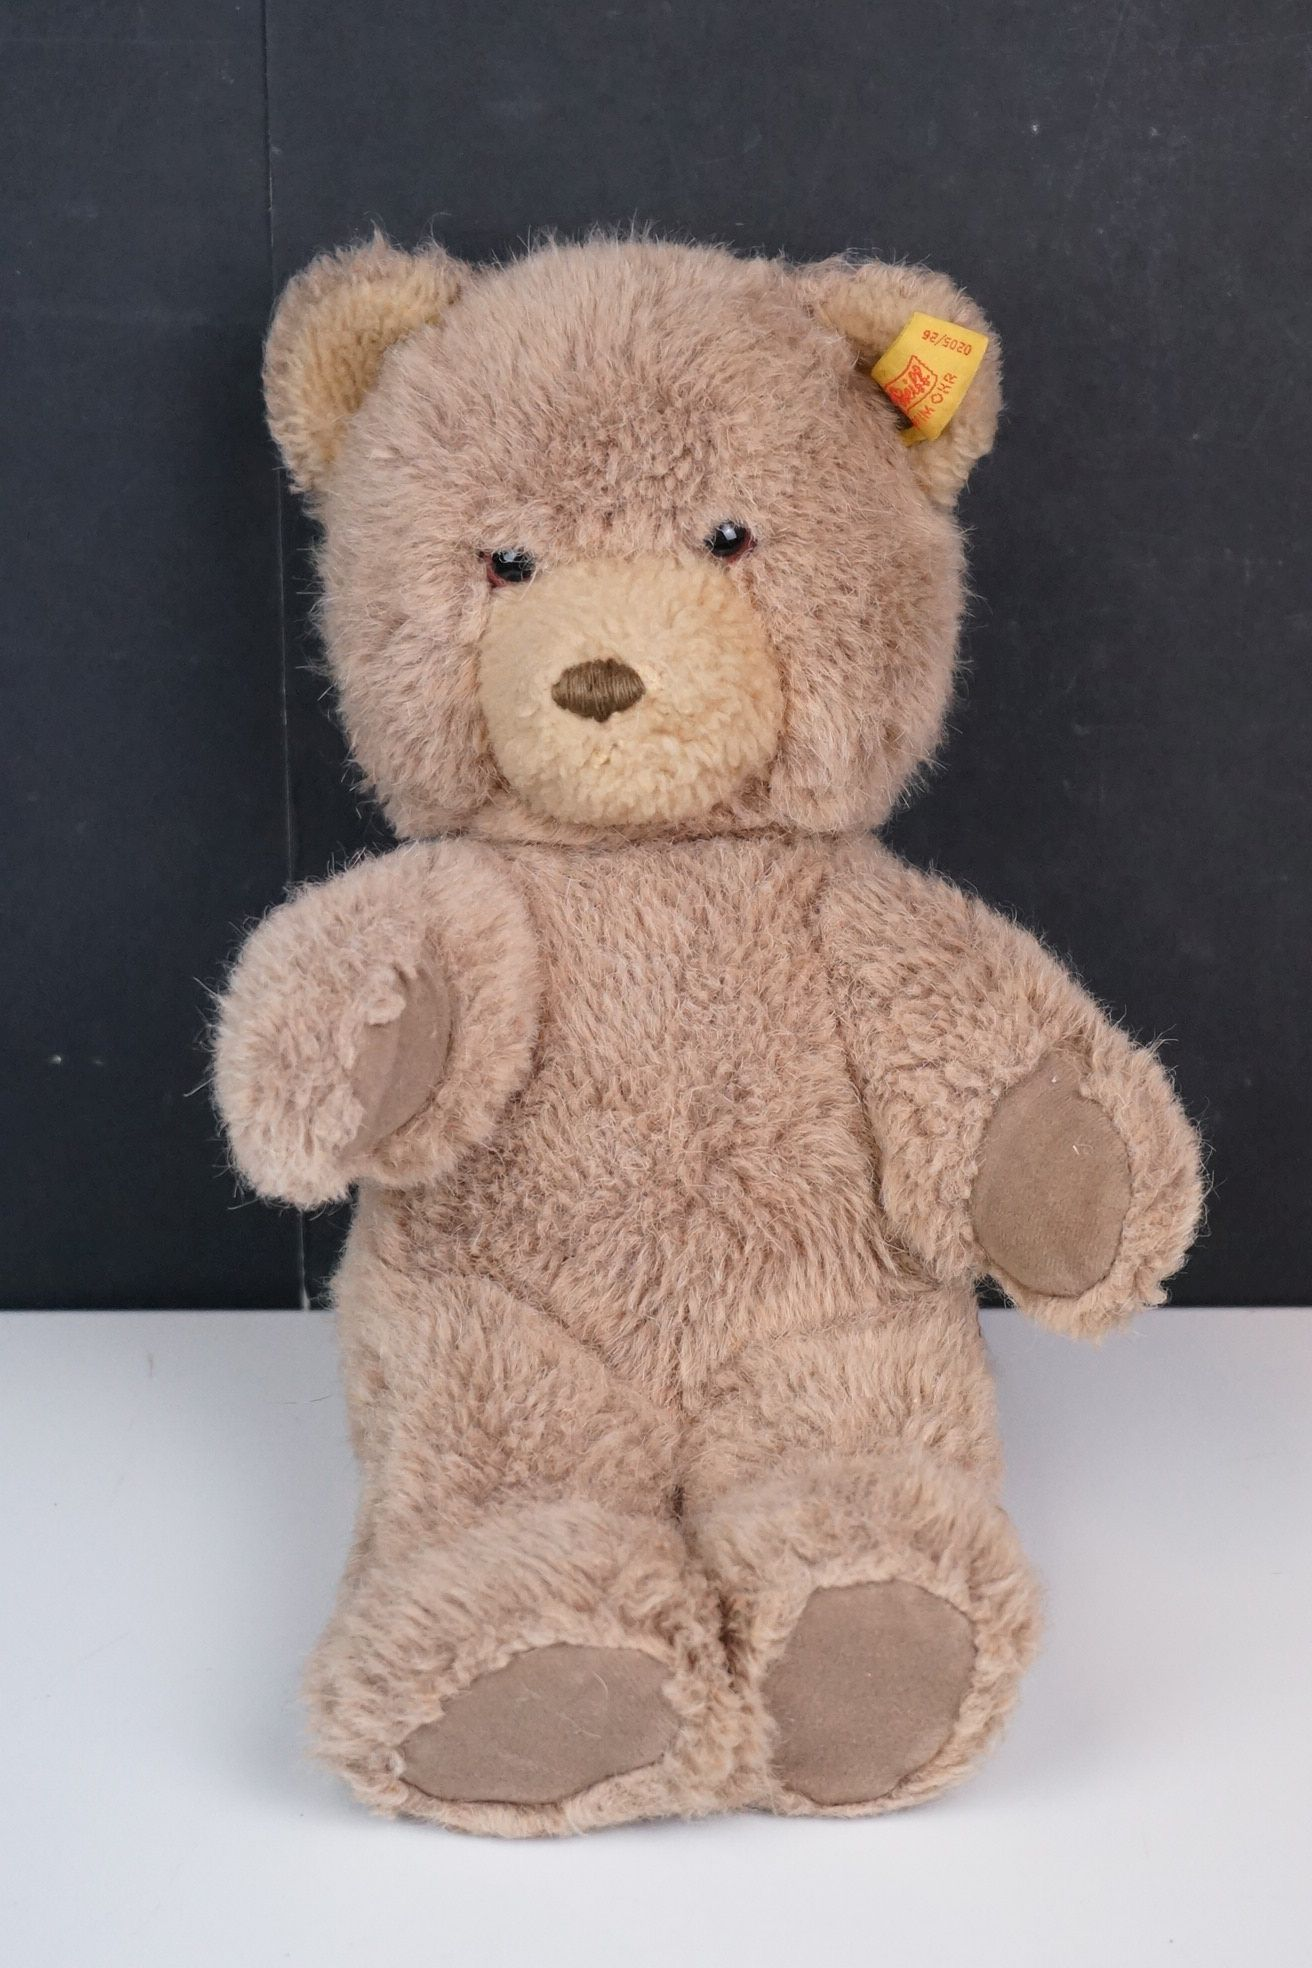 Steiff Teddy Bear, Two Merrythoughts Teddy Bears with Burgundy & Gold Ribbons to neck plus one - Image 7 of 8